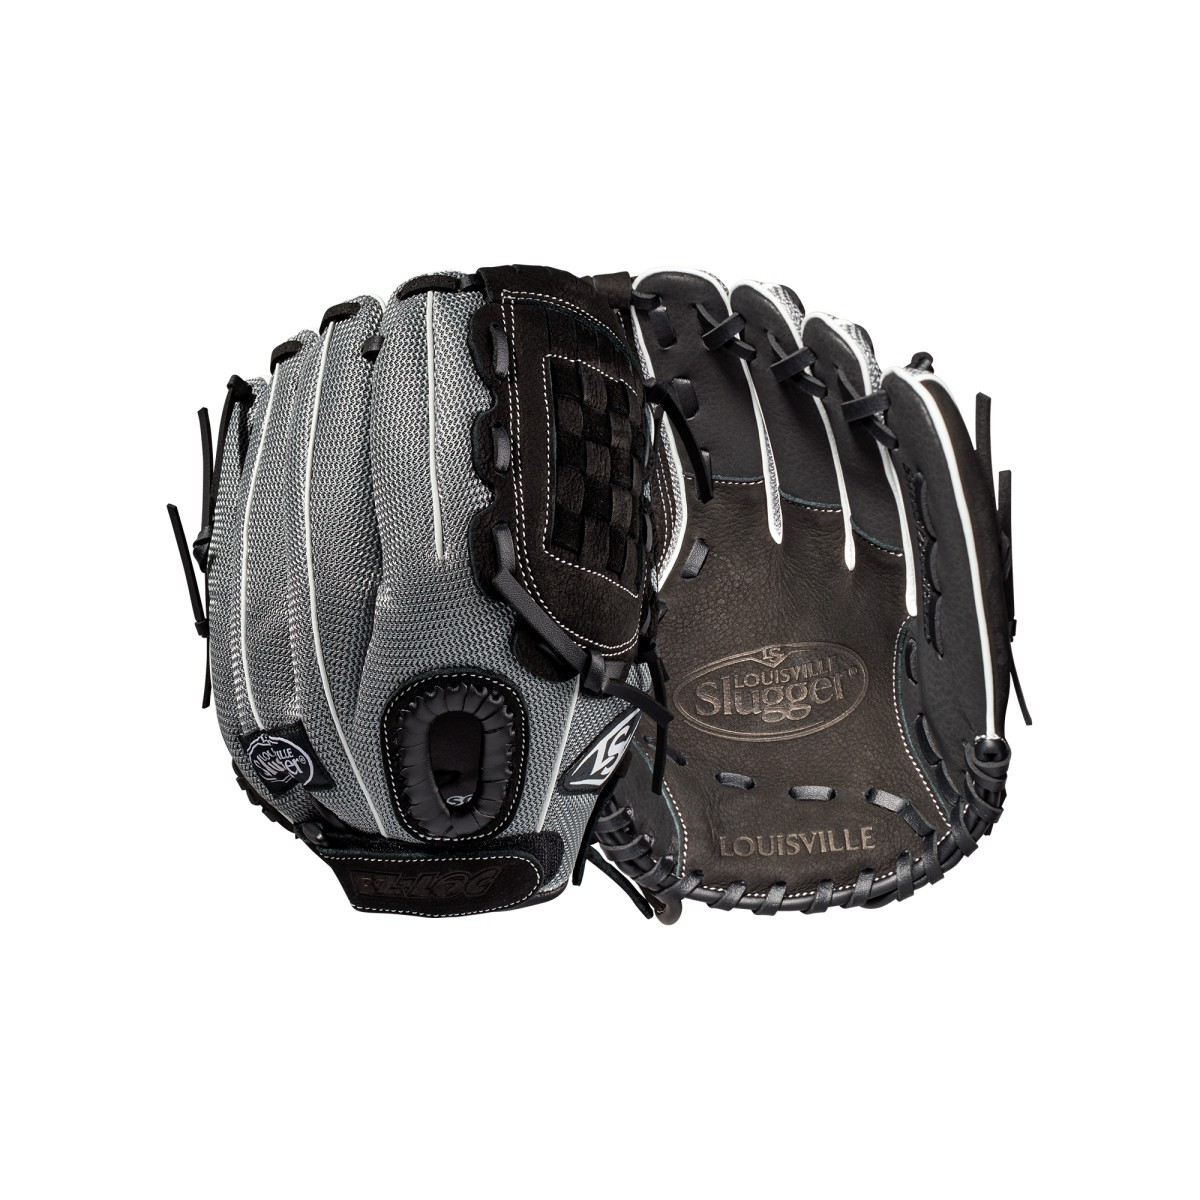 "LOUISVILLE SLUGGER GENESIS 10.5"" YOUTH GLOVE"